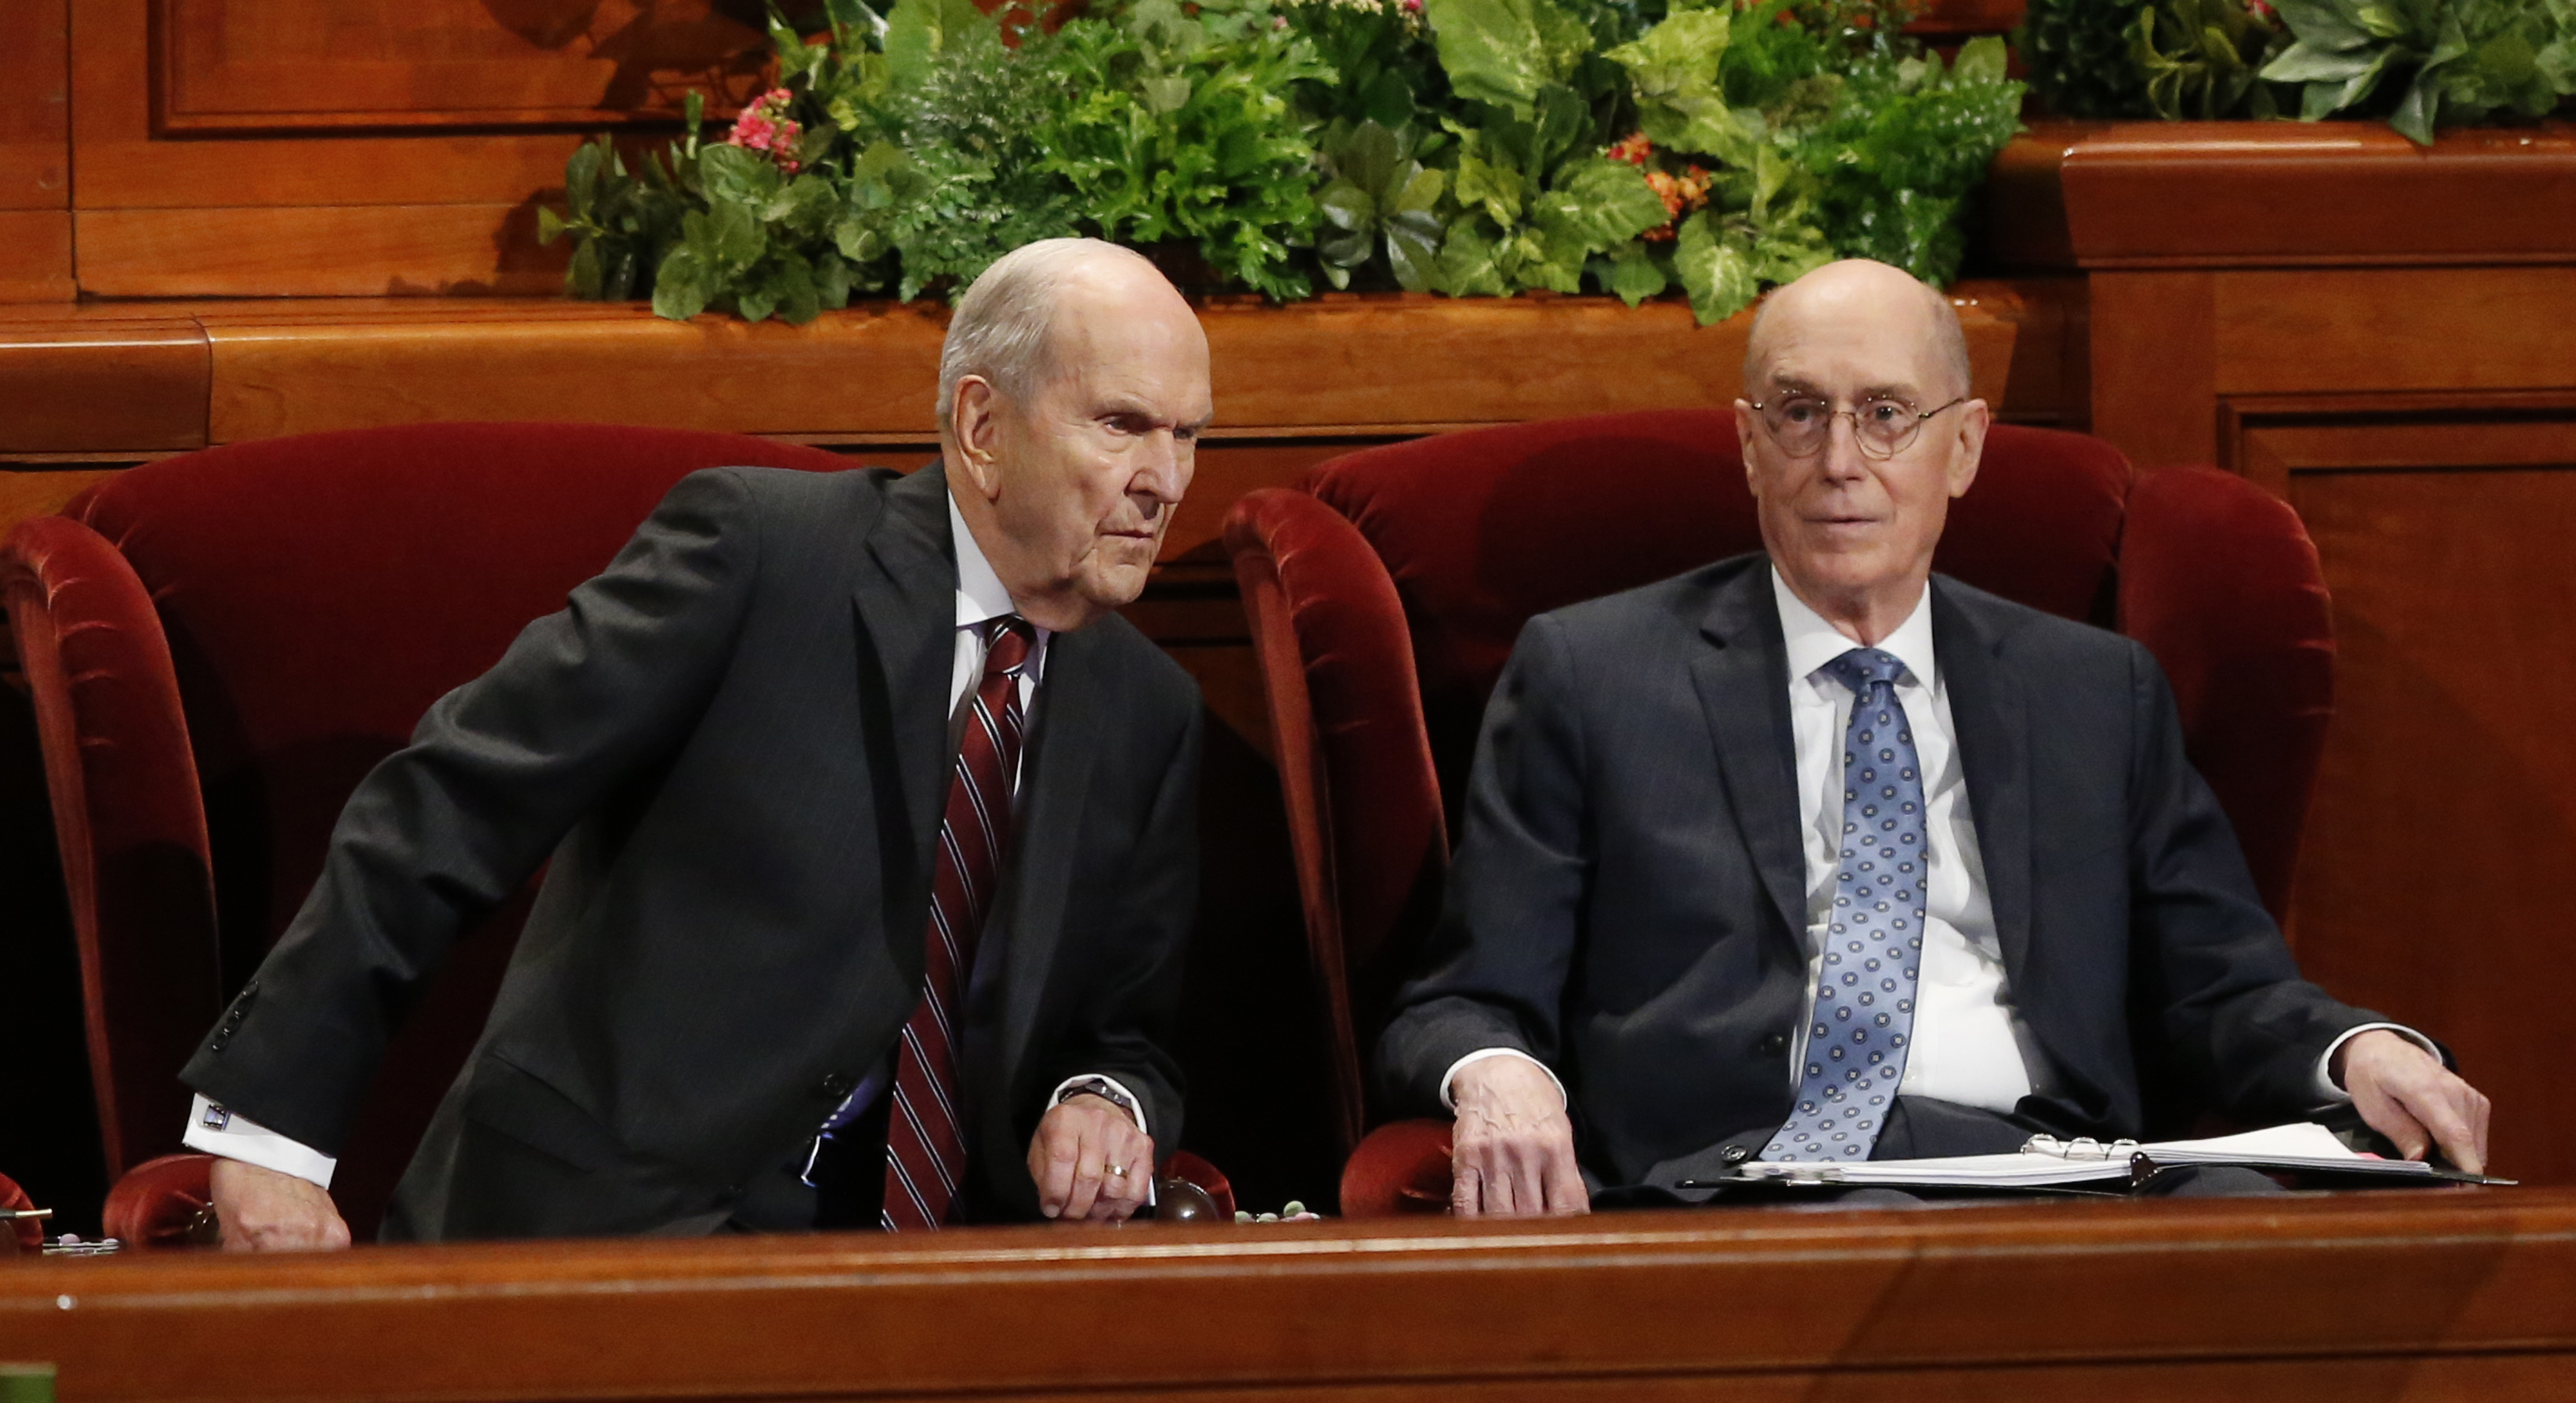 President Russell M. Nelson, left, and his counselor Henry B. Eyring look on during the twice-annual conference of the Church of Jesus Christ of Latter-day Saints, Oct. 6, 2018, in Salt Lake City.